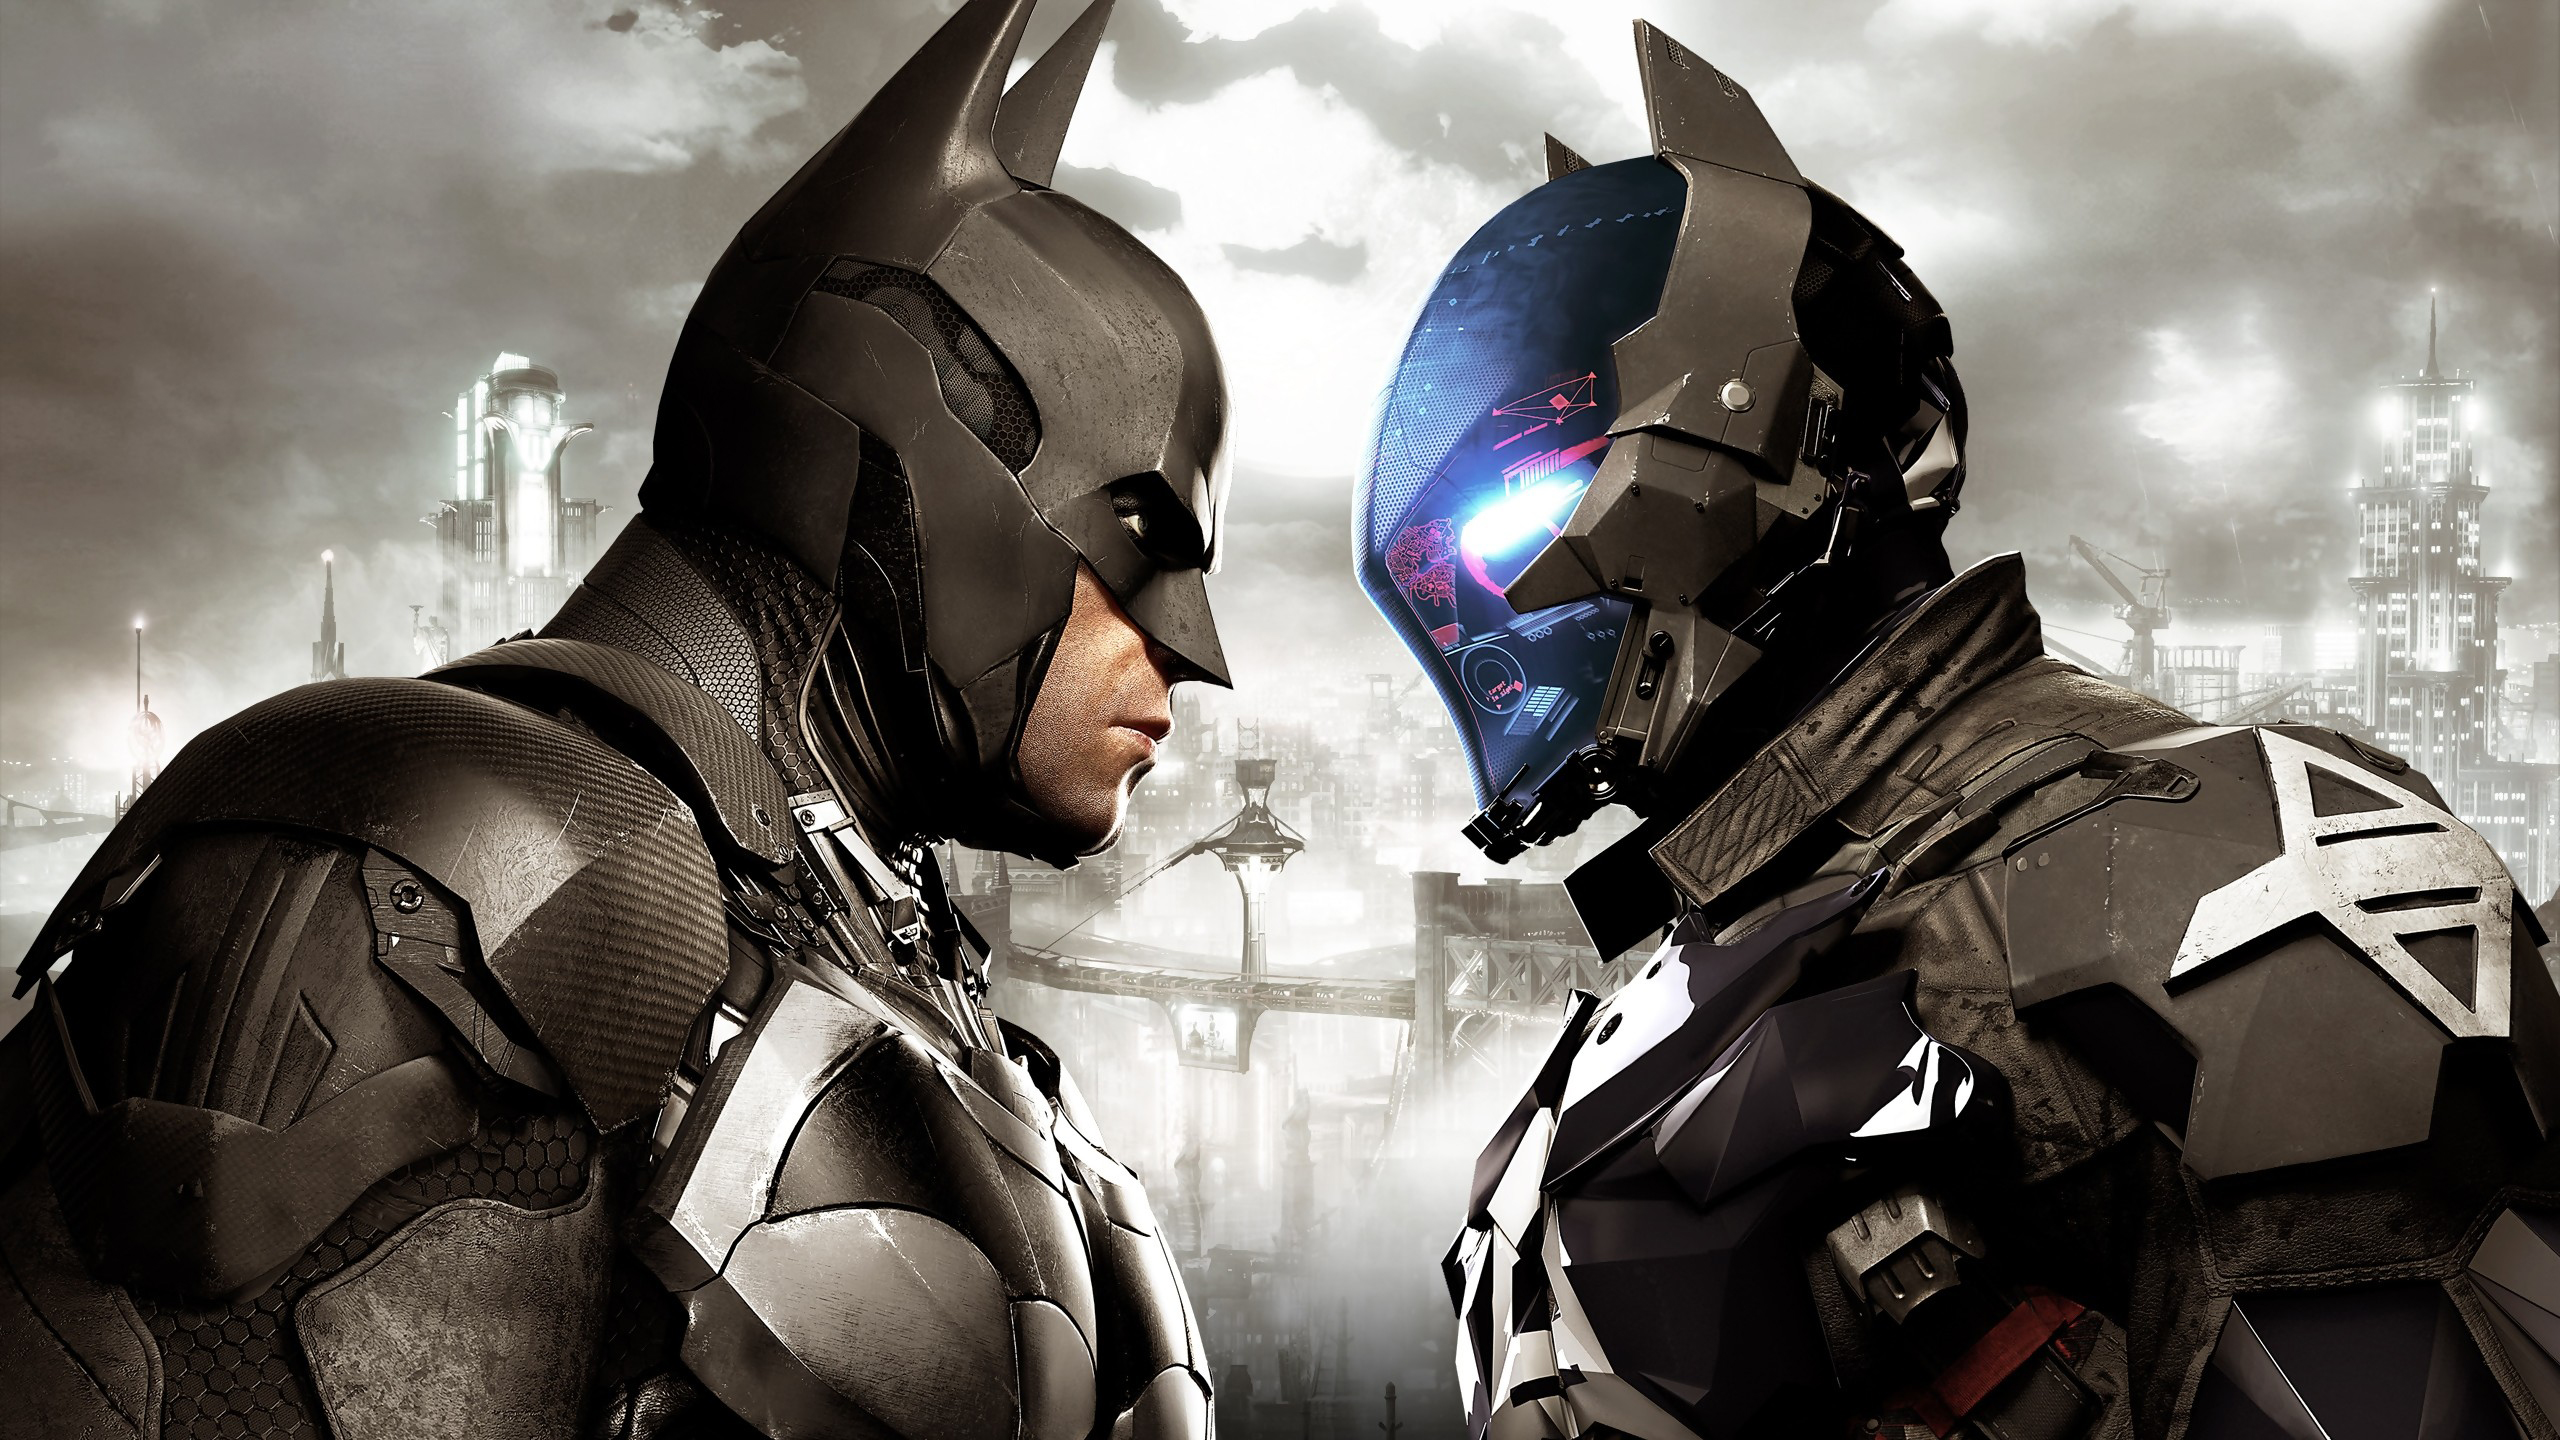 batman vs arkham knight.jpg